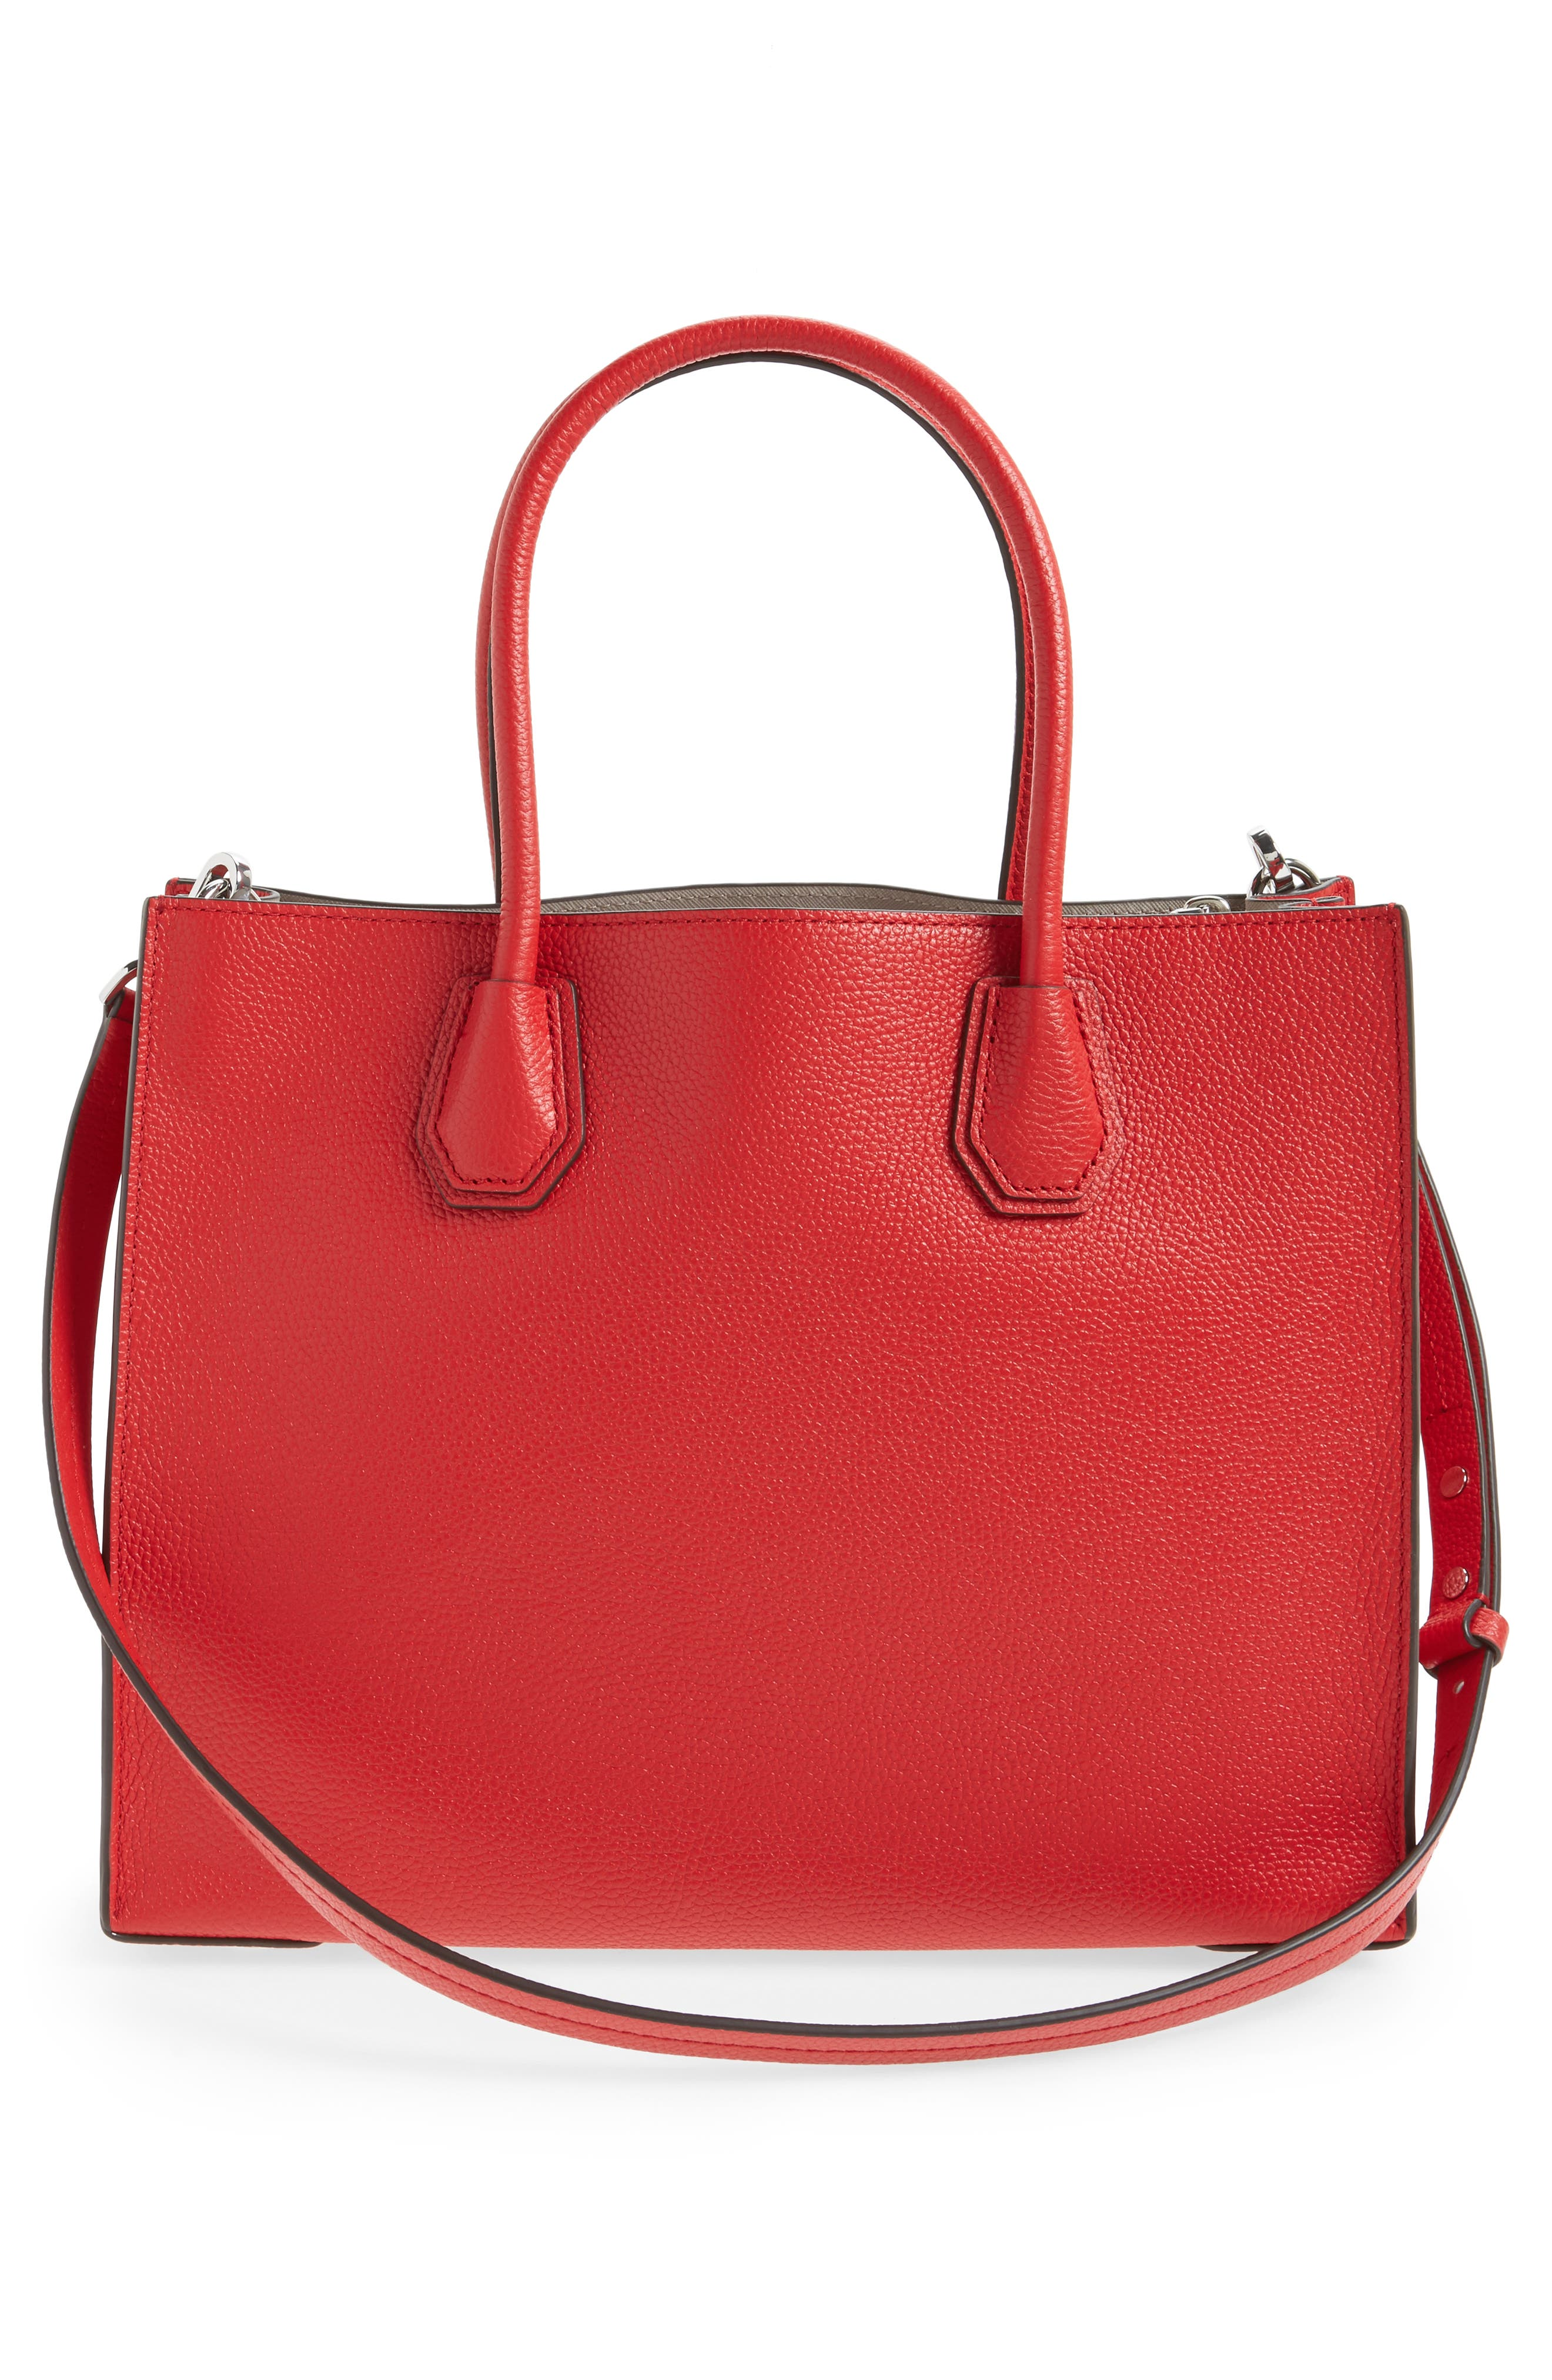 'Large Mercer' Tote,                             Alternate thumbnail 2, color,                             Bright Red